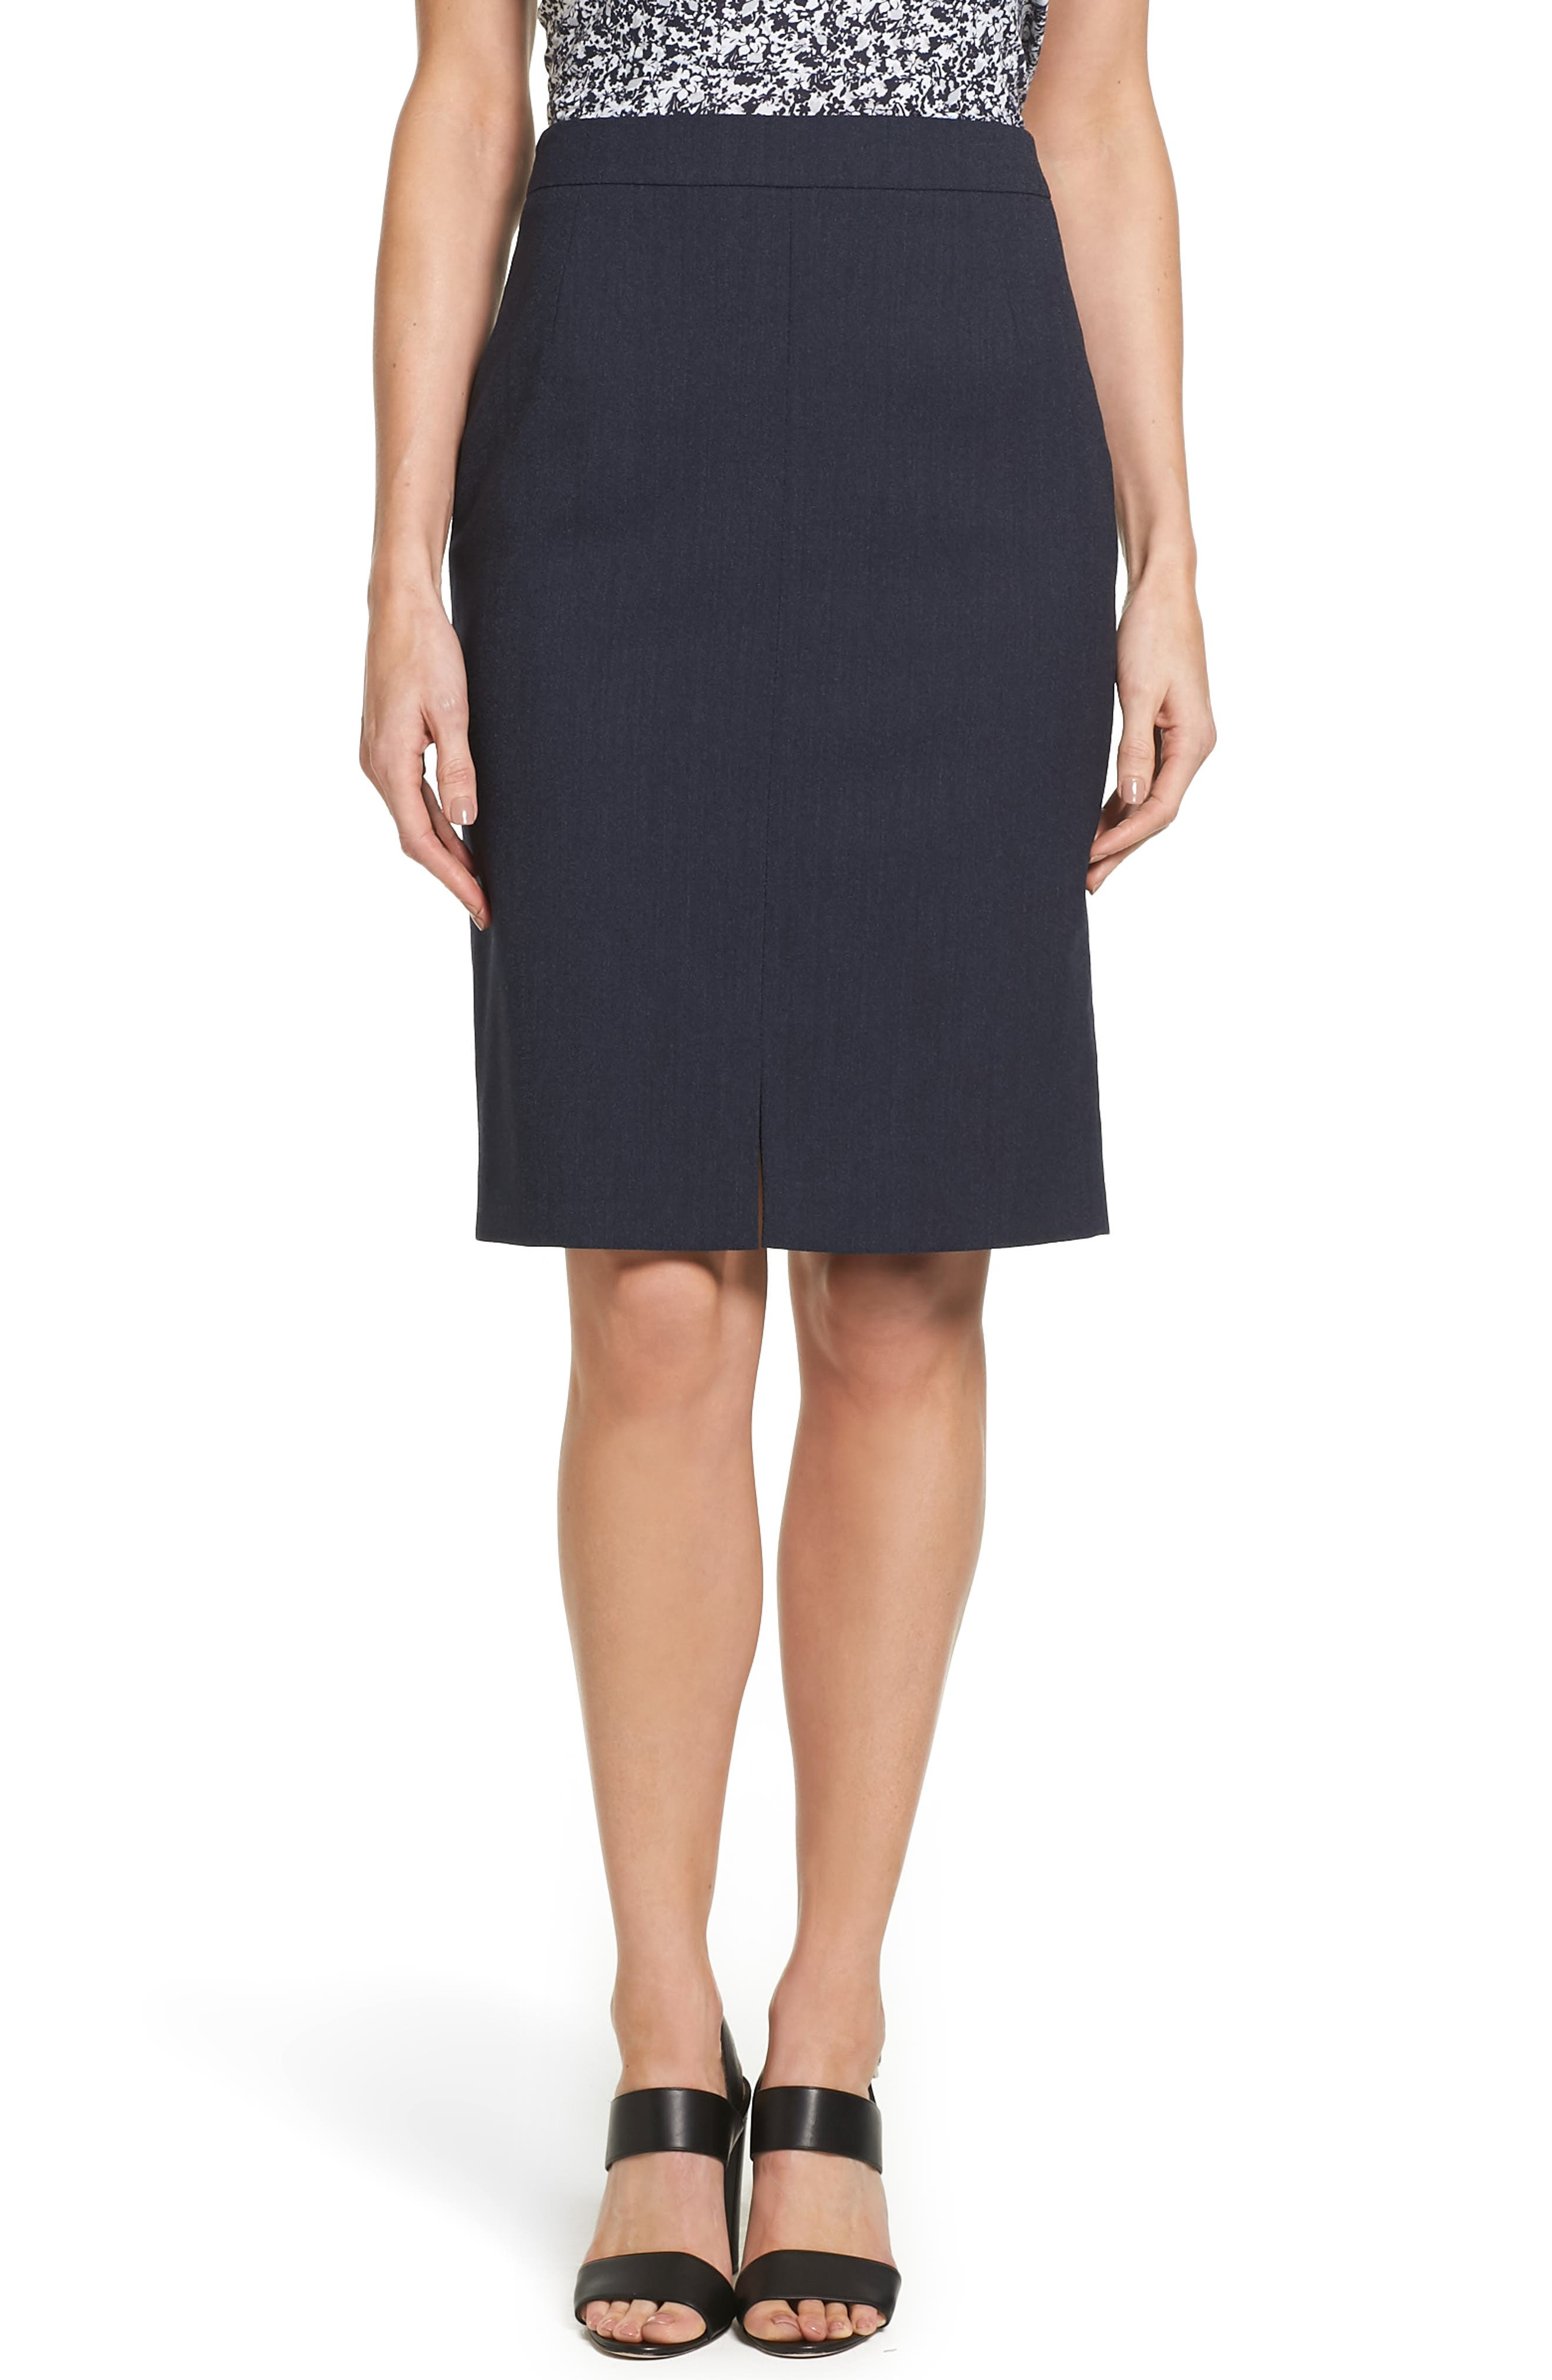 BOSS Valesana Stretch Wool Pencil Skirt